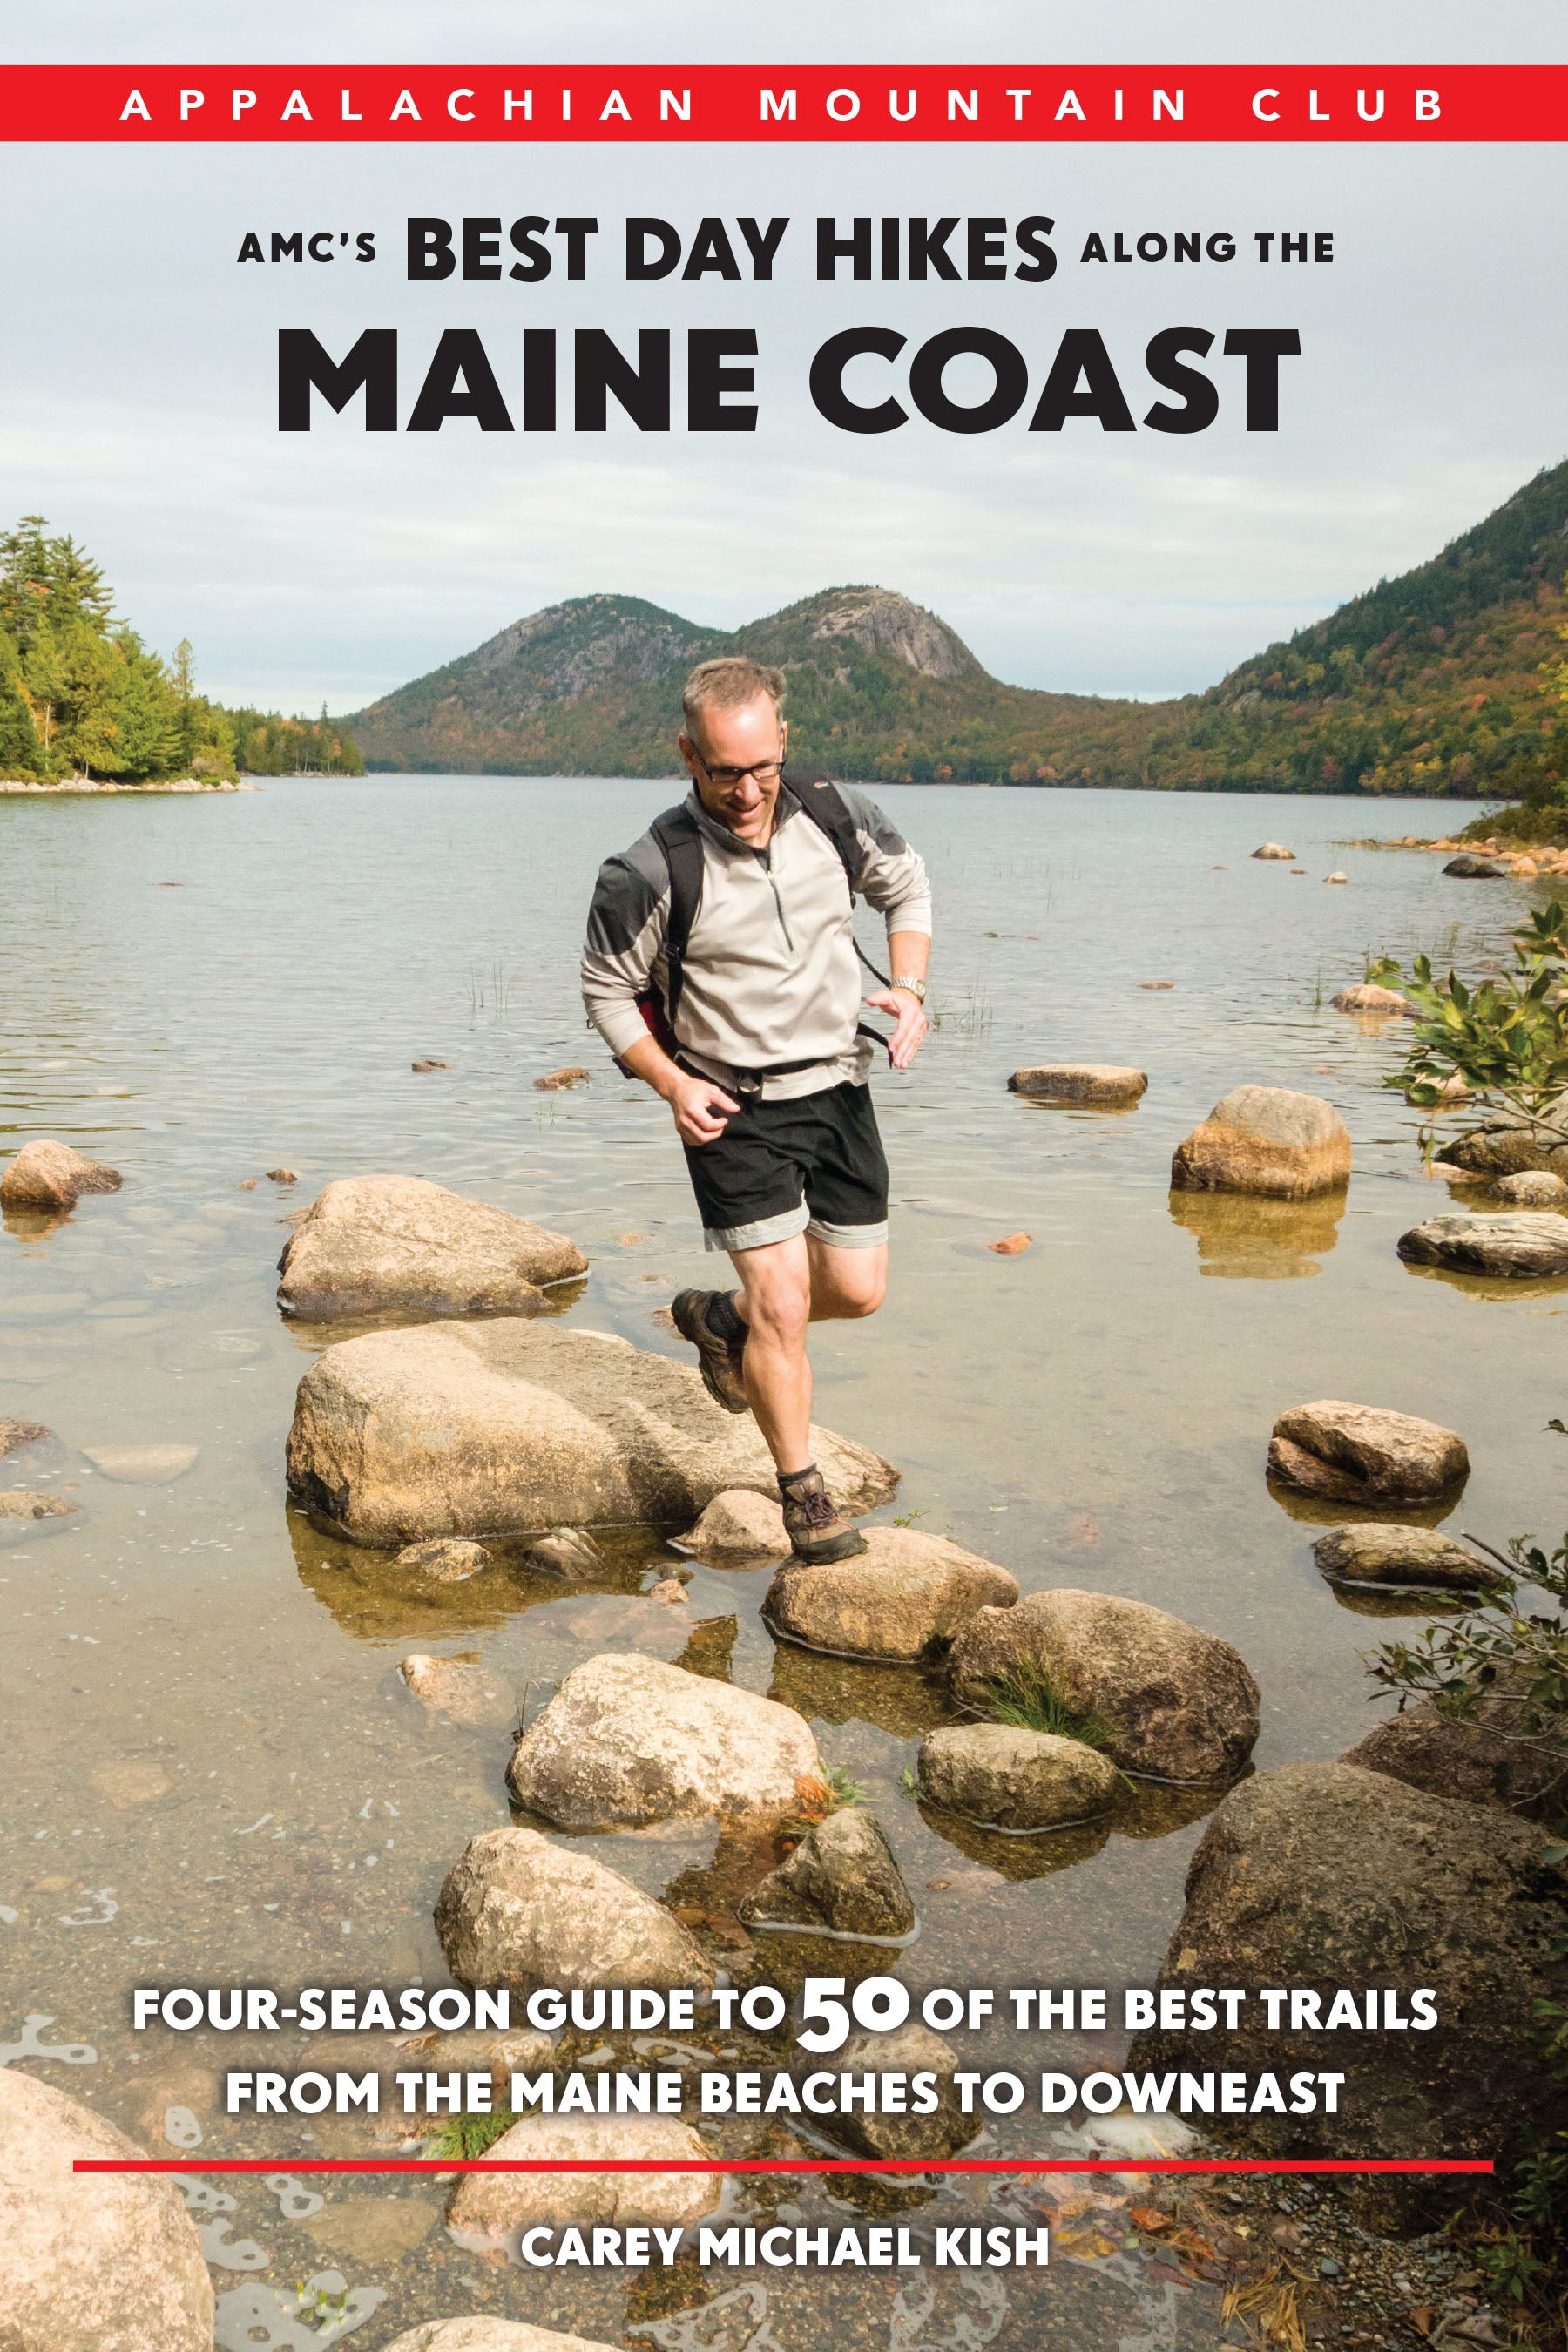 AMC's Best Day Hikes Along the Maine Coast